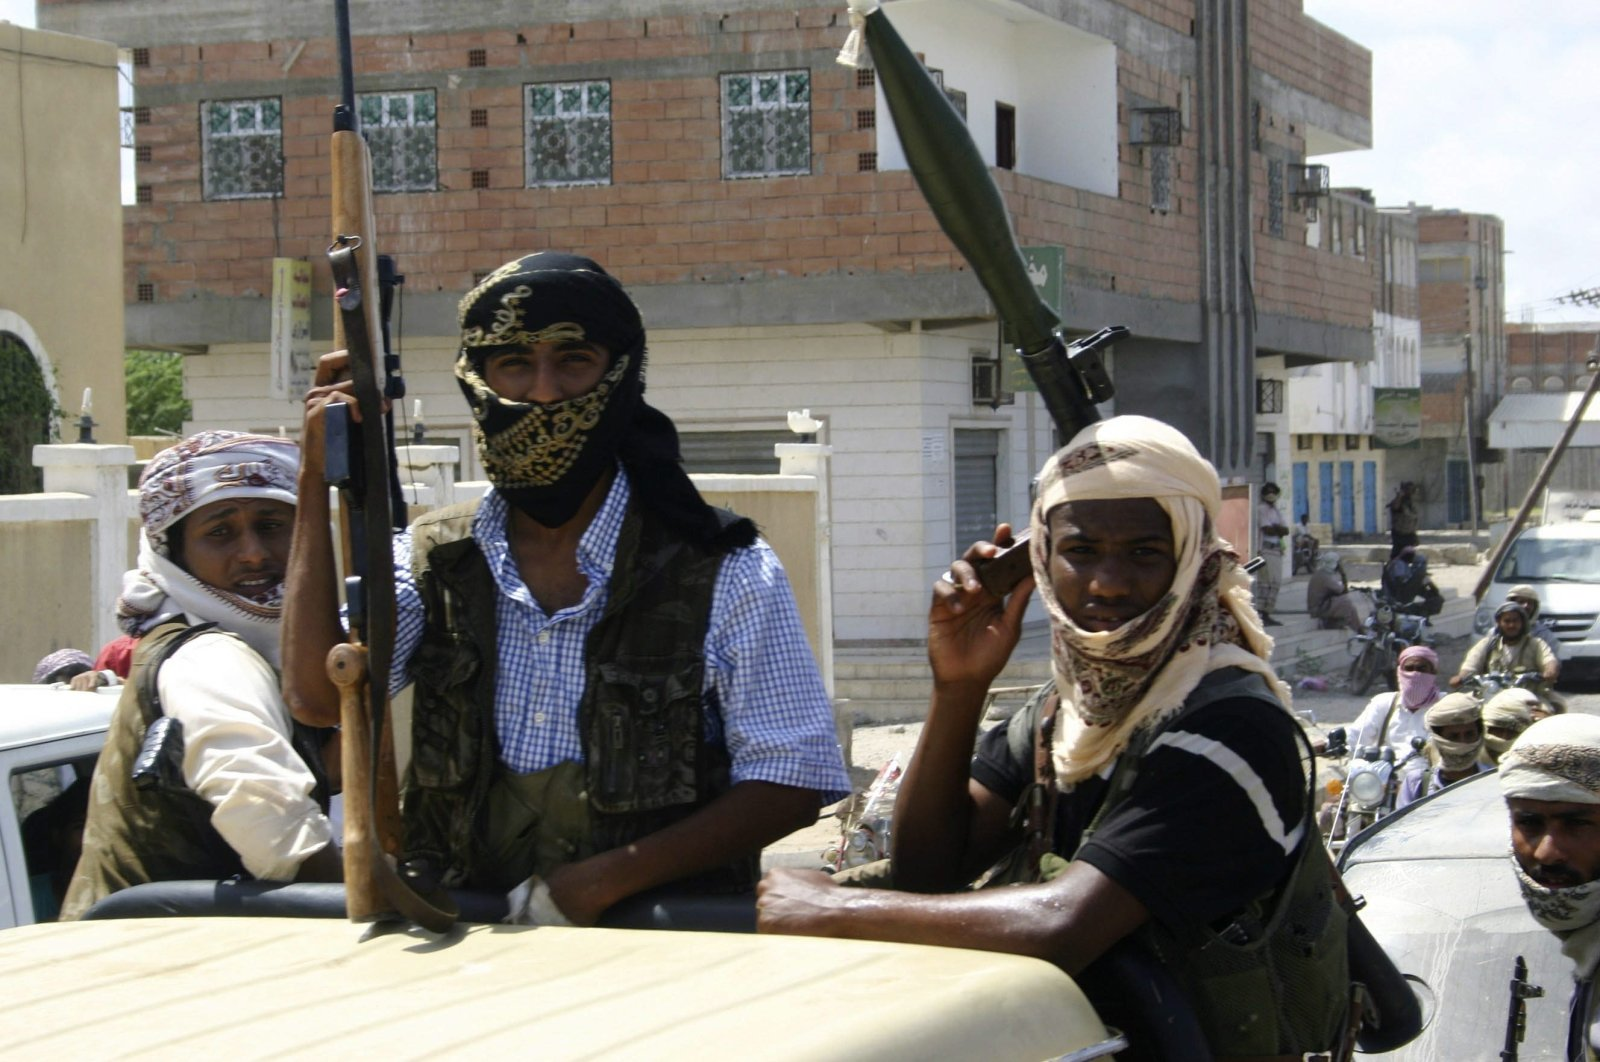 Members of Ansar al-Sharia, an al-Qaida affiliated group, carry their weapons as they ride on a truck in the town of Jaar, southern Yemen, April 28, 2012. (Reuters Photo)